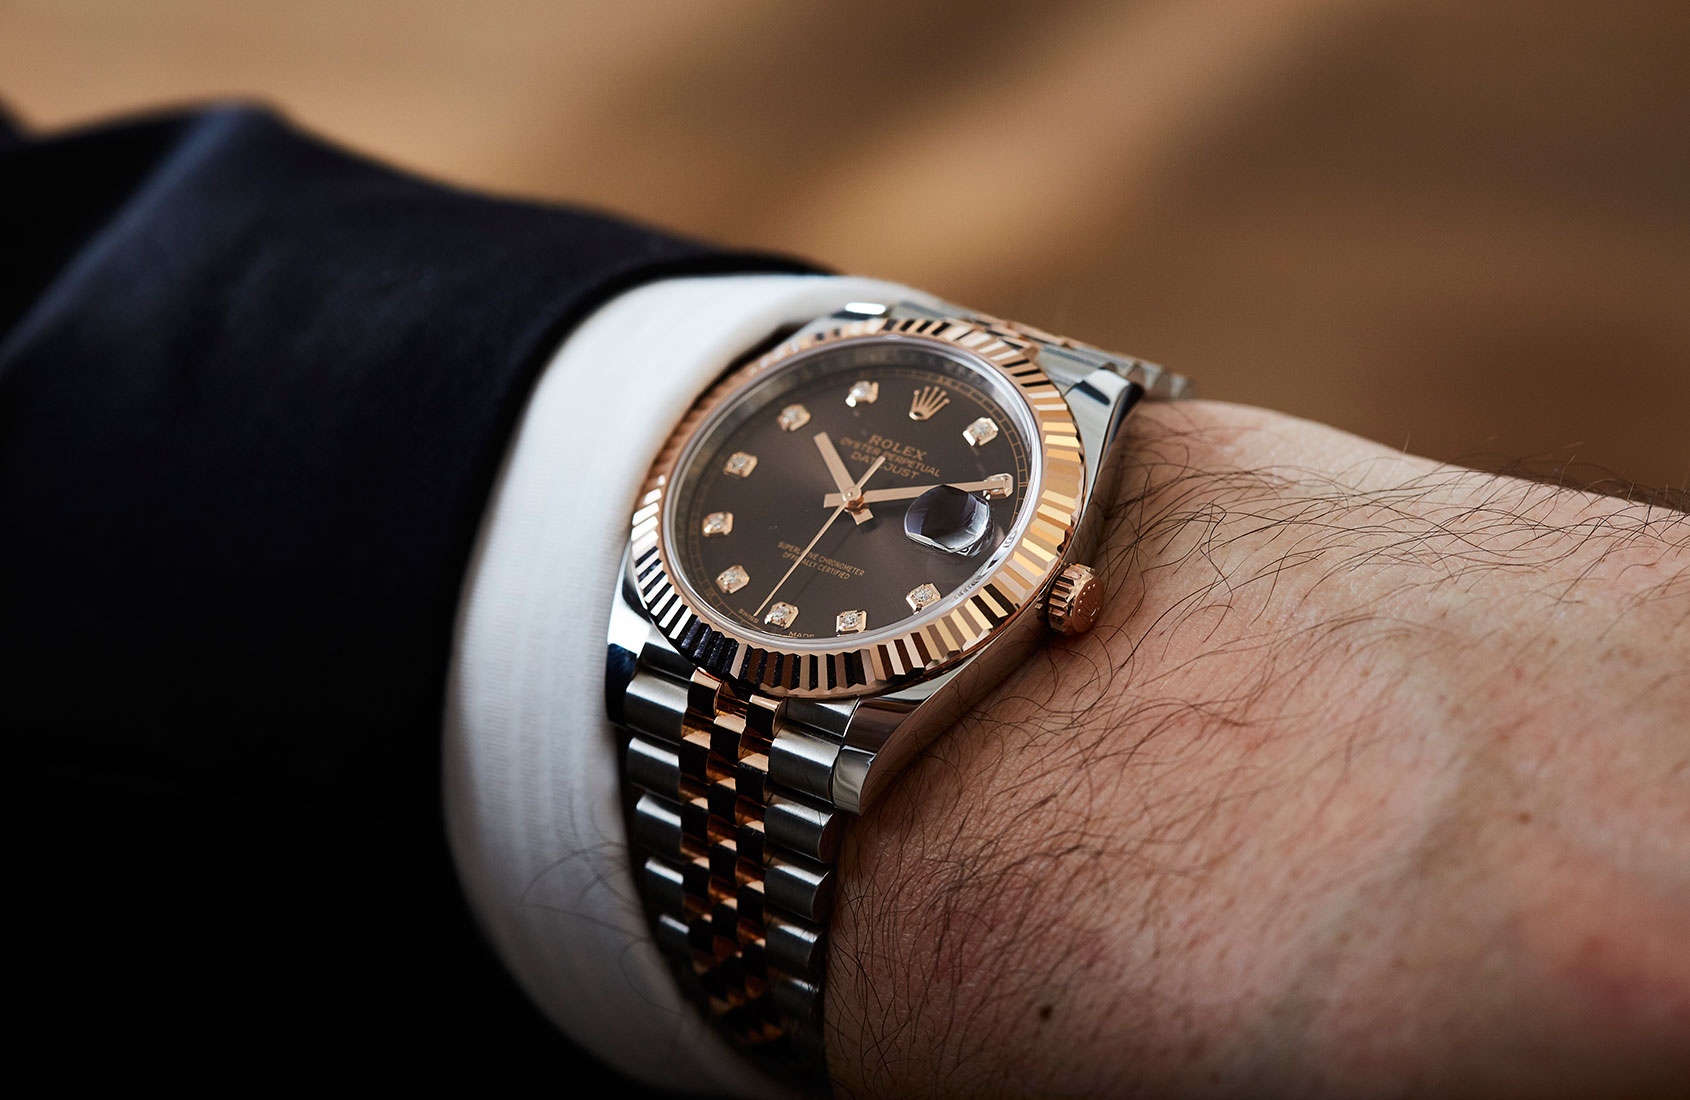 Rolex Oyster Perpetual Datejust 41 Hands On Review